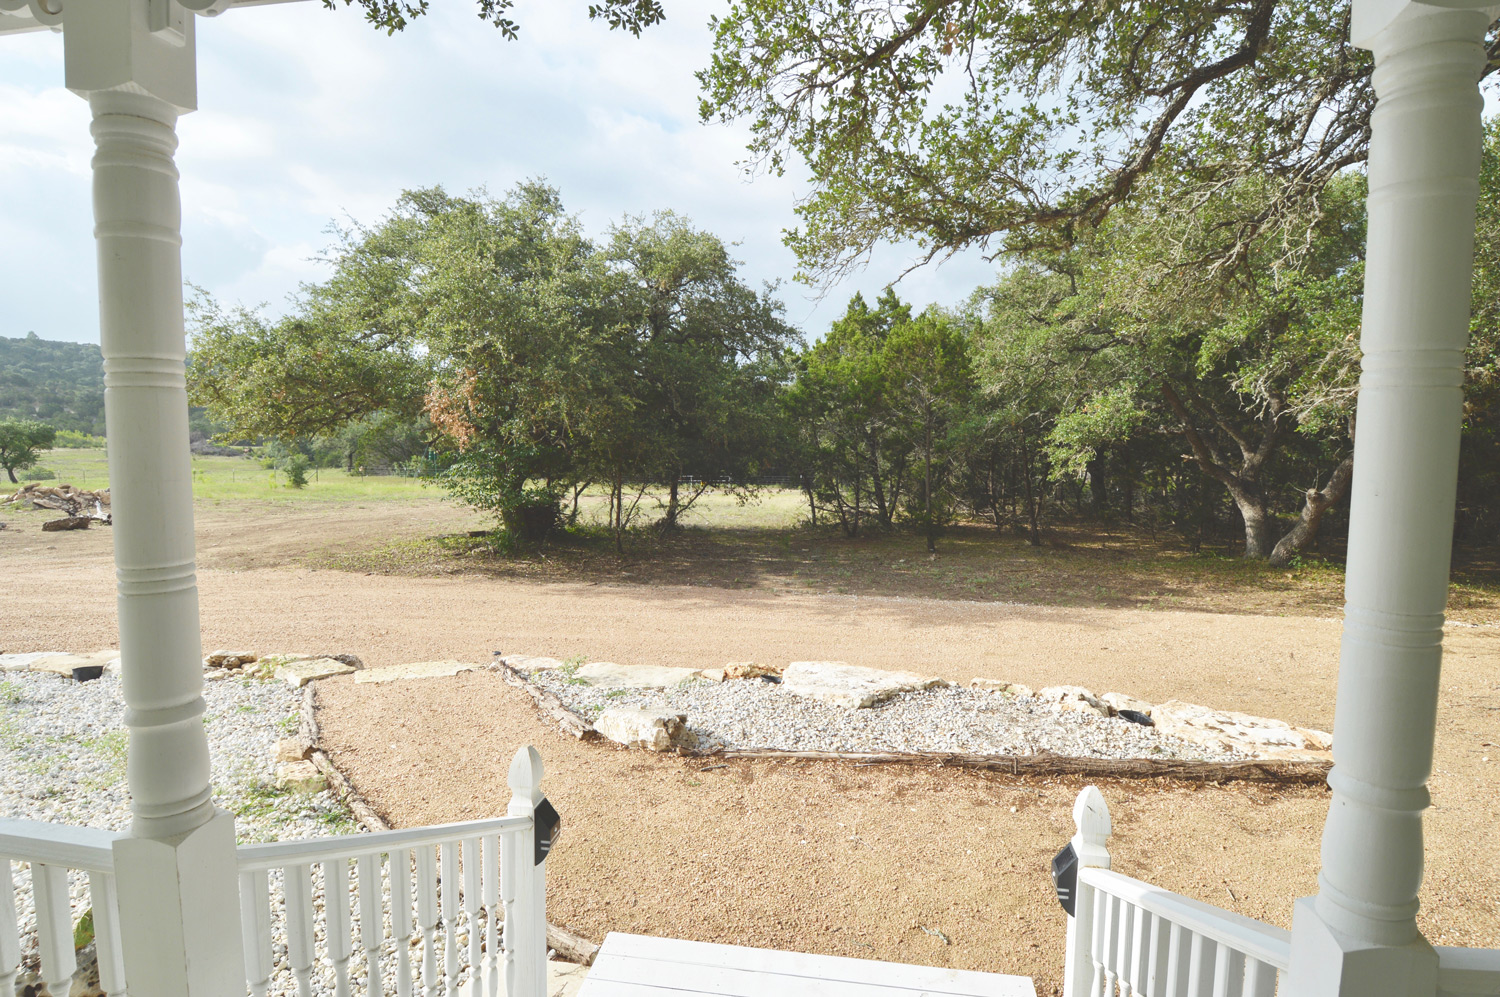 tx cottages cottage country hill talentneeds com texas exceptionnel cypress exterior cabins on creek wimberley